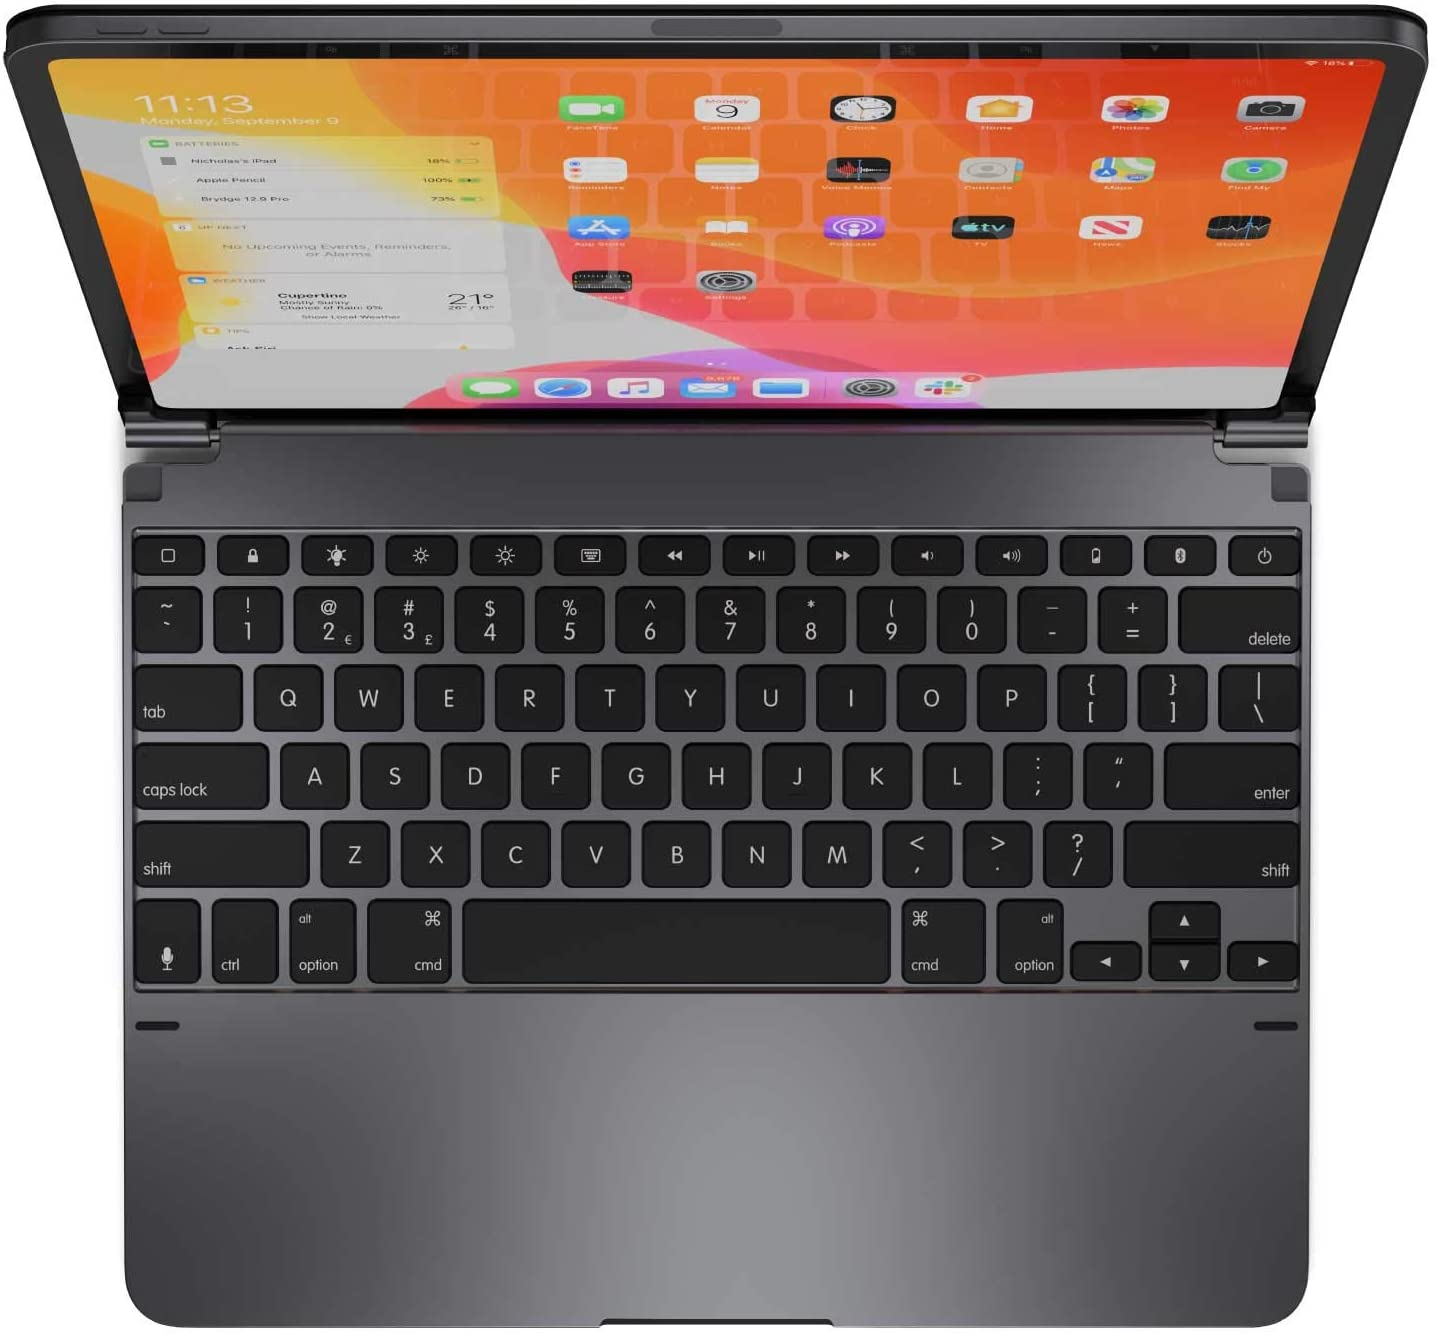 Brydge Pro 12.9 Keyboard for iPad Pro 12.9-inch 3rd Generation, 2018 Model Only | Aluminum Wireless Bluetooth Keyboard with Backlit Keys | Long Battery Life | (Space Gray)